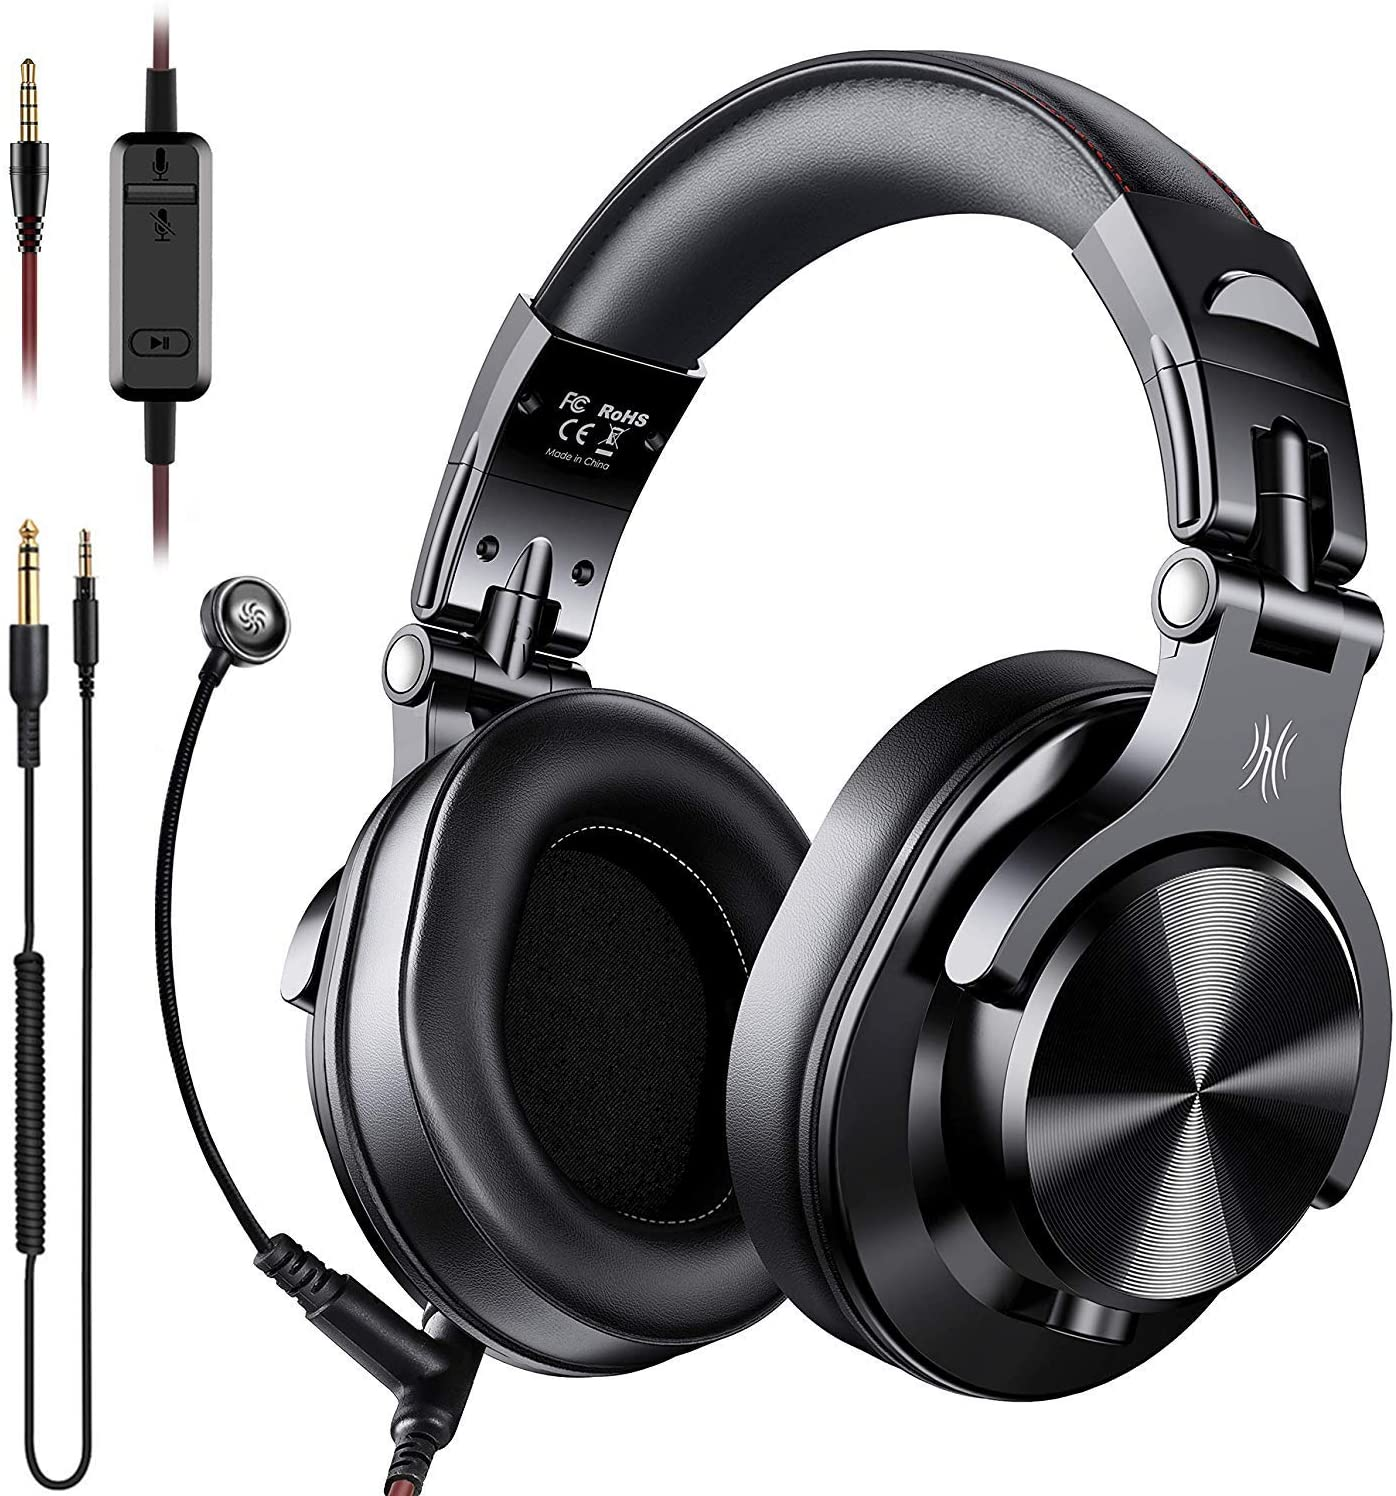 OneOdio A71 Over-Ear Headsets with Boom Mic